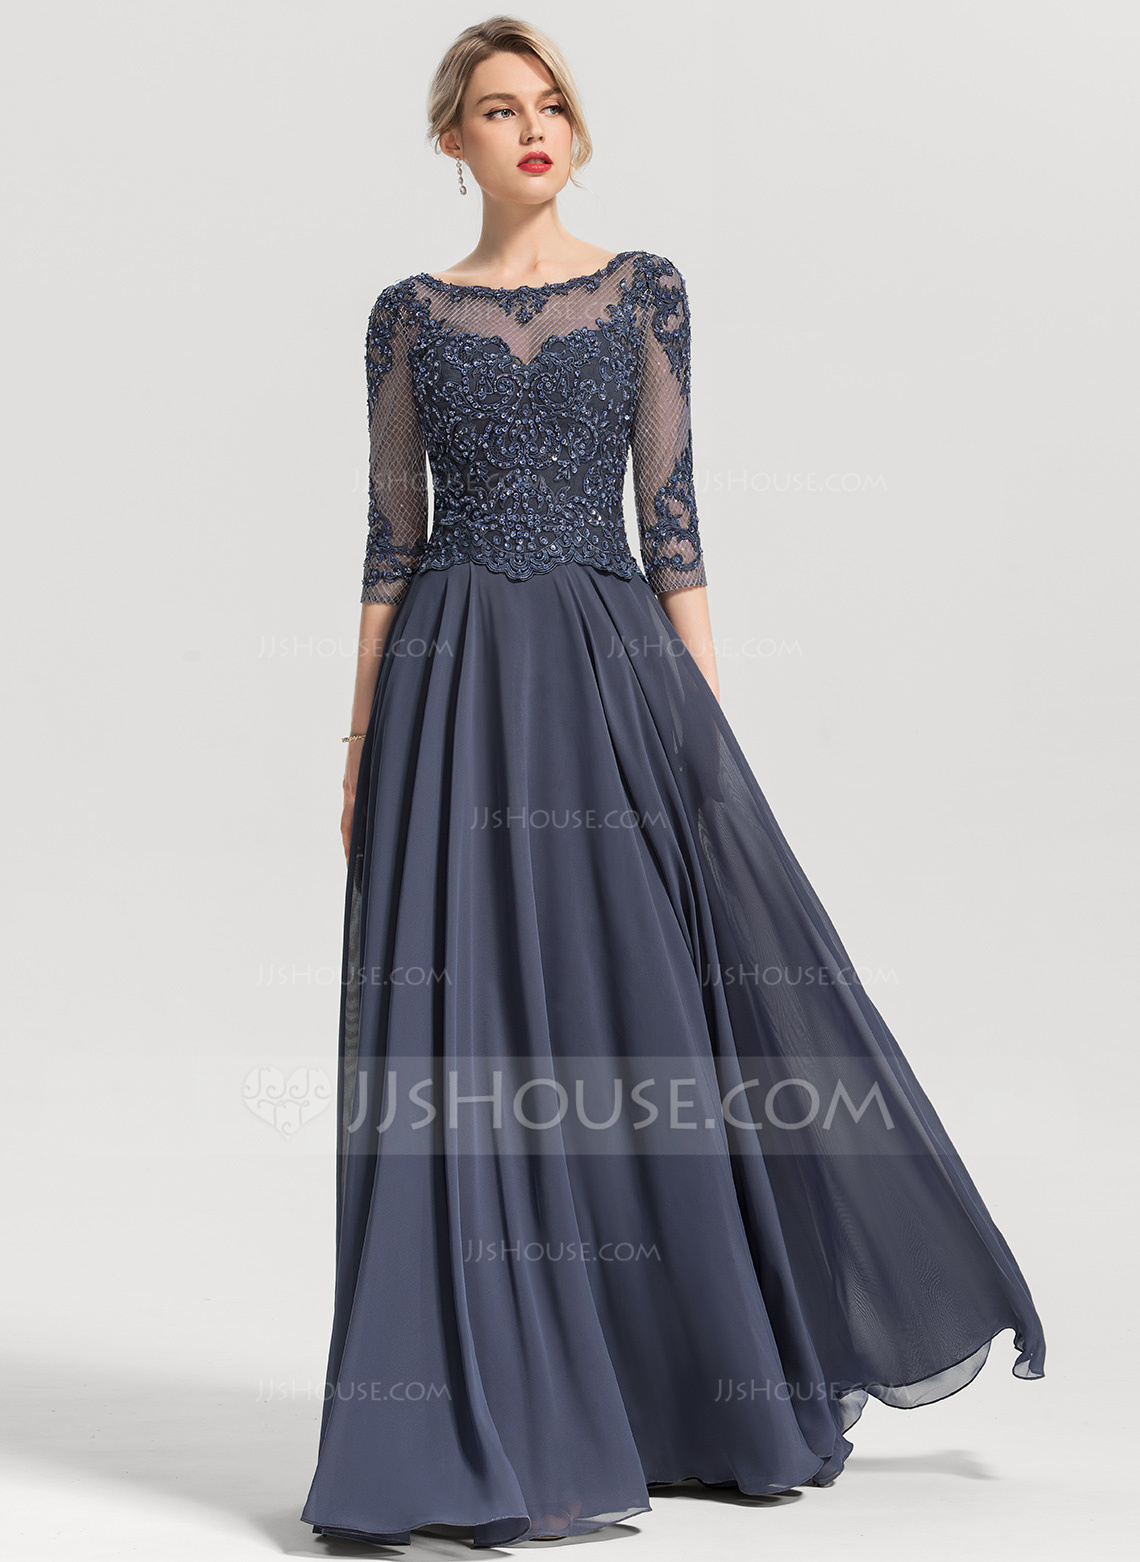 0899caa7a6 A-Line Scoop Neck Floor-Length Chiffon Prom Dresses With Beading Sequins.  Loading zoom